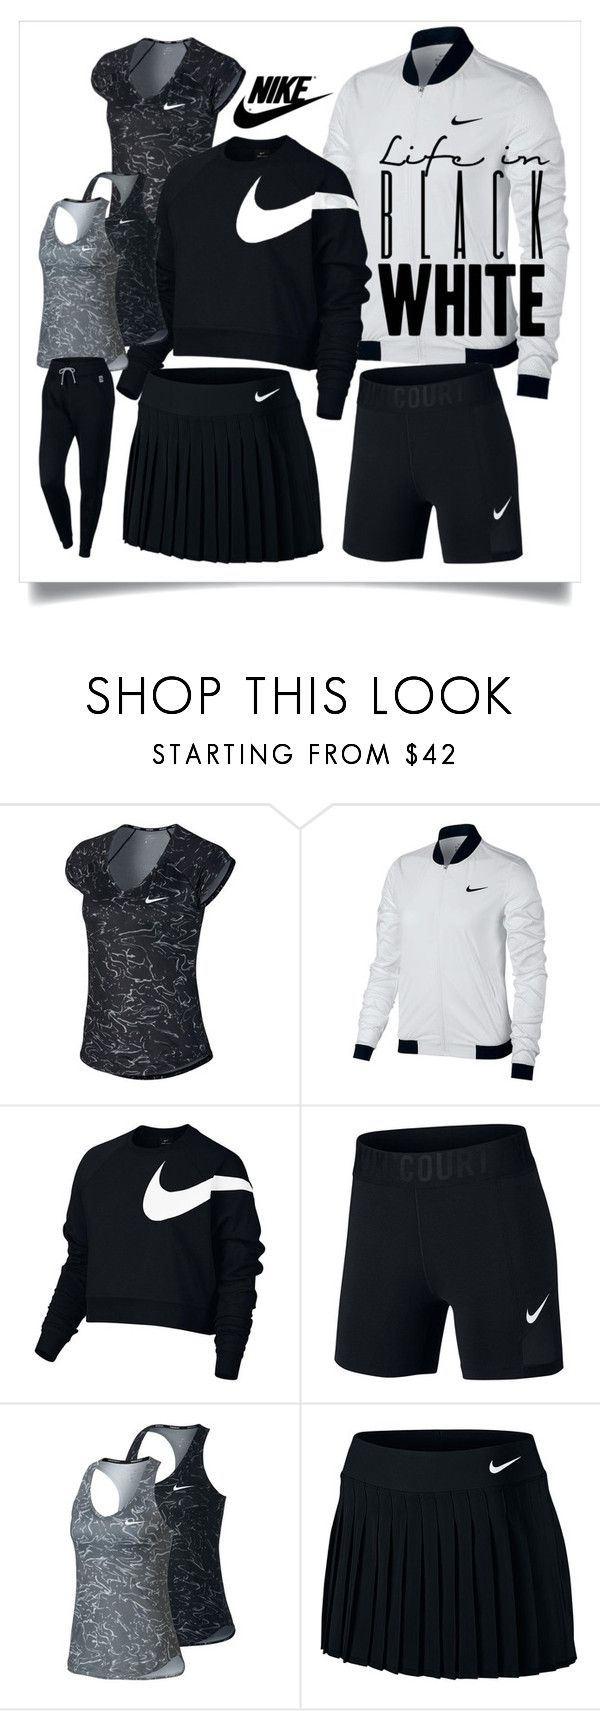 """""""New Nike Tennis Fashion for Women"""" by tennisexpress ❤ liked on Polyvore featuring NIKE, nike, tennis, tennisfashion, TennisExpress and athleticdna"""